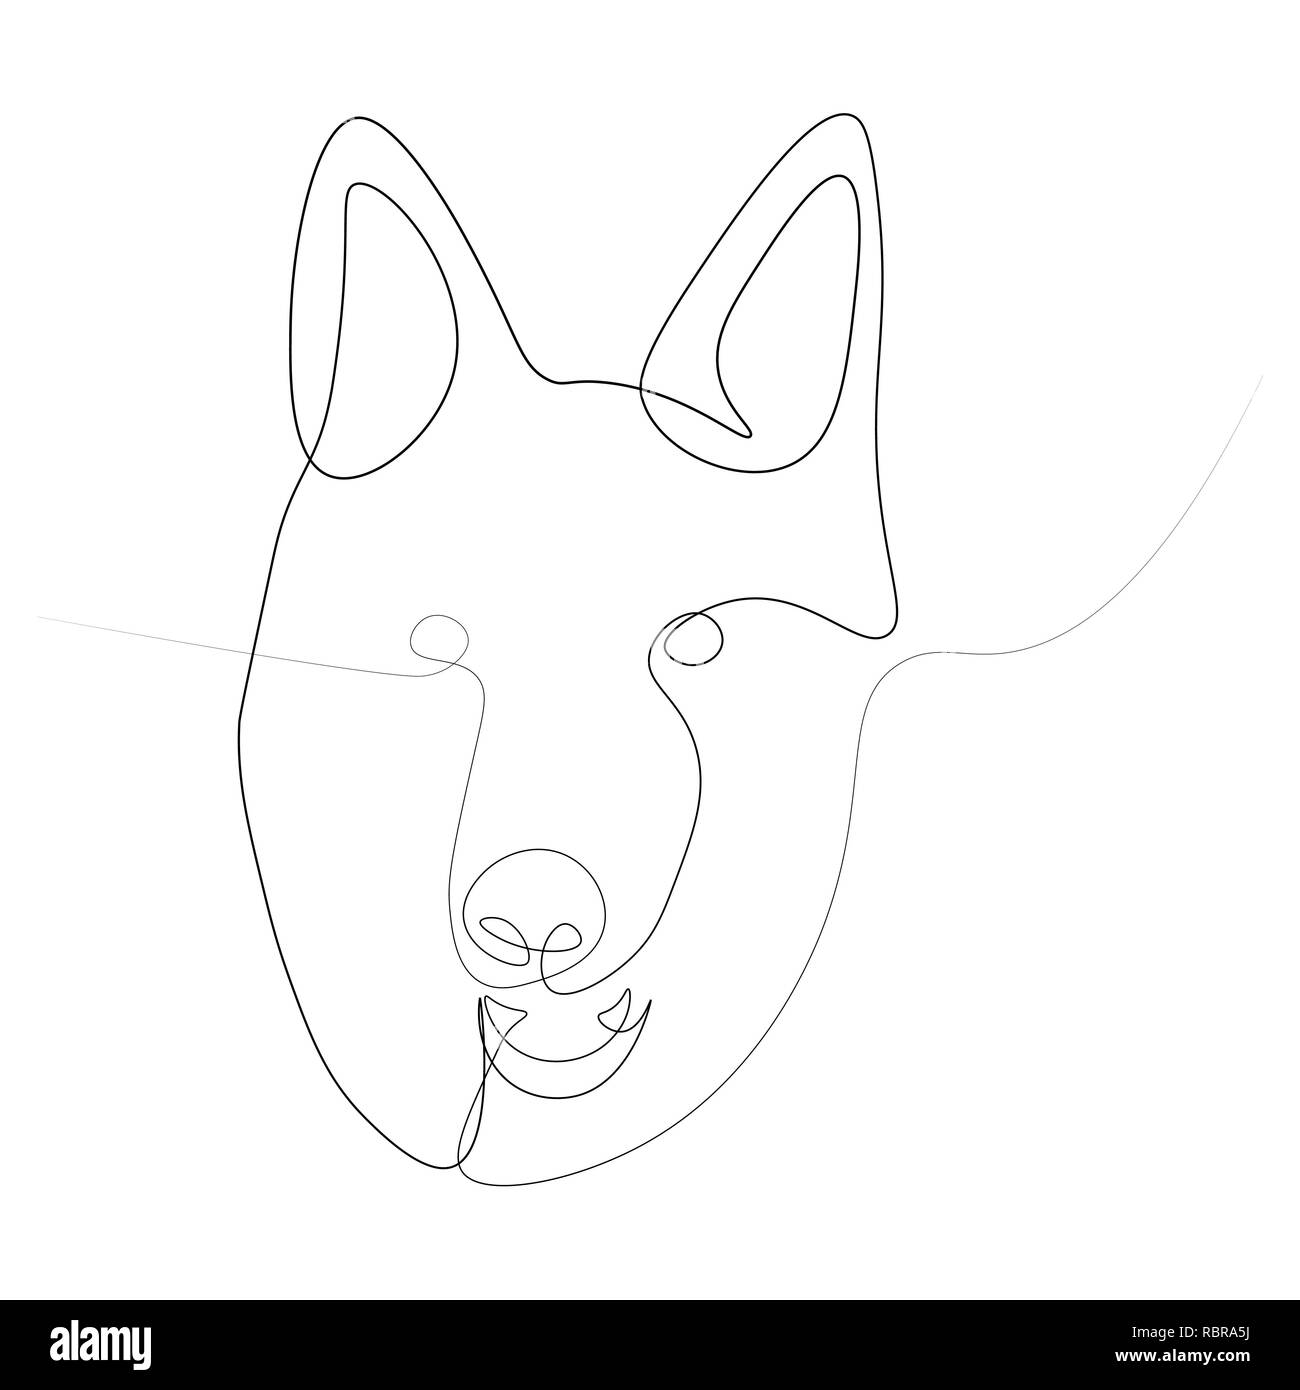 The head of the German shepherd in one line.  illustration on white background. - Stock Image